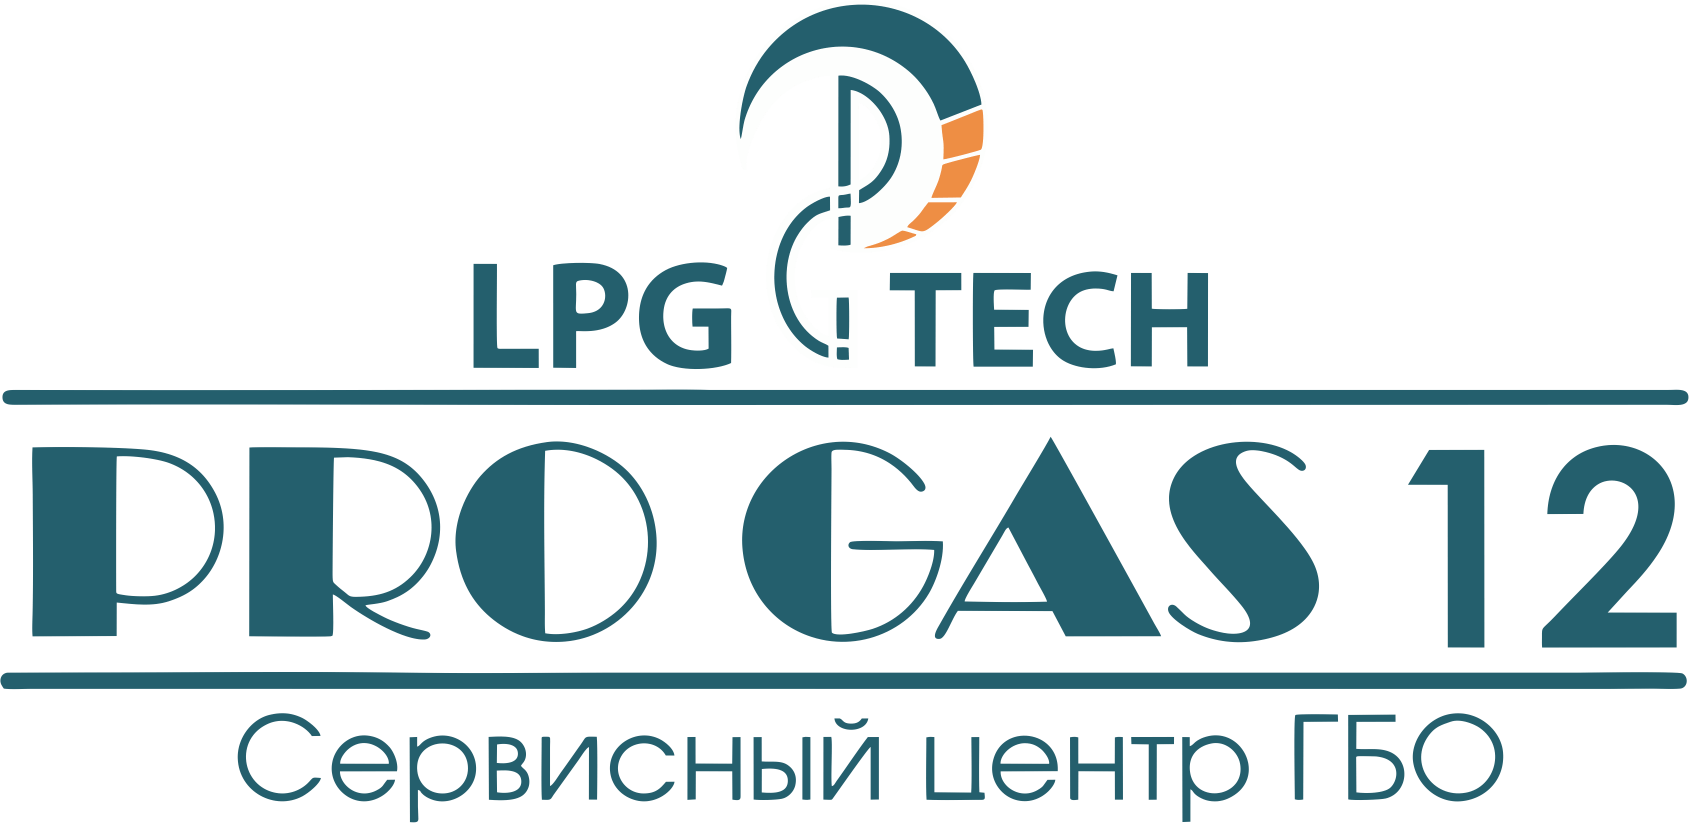 <b>Notice</b>: Undefined variable: name in <b>/var/www/uid426/data/www/progas12.ru/catalog/view/theme/default/template/common/footer.tpl</b> on line <b>8</b>